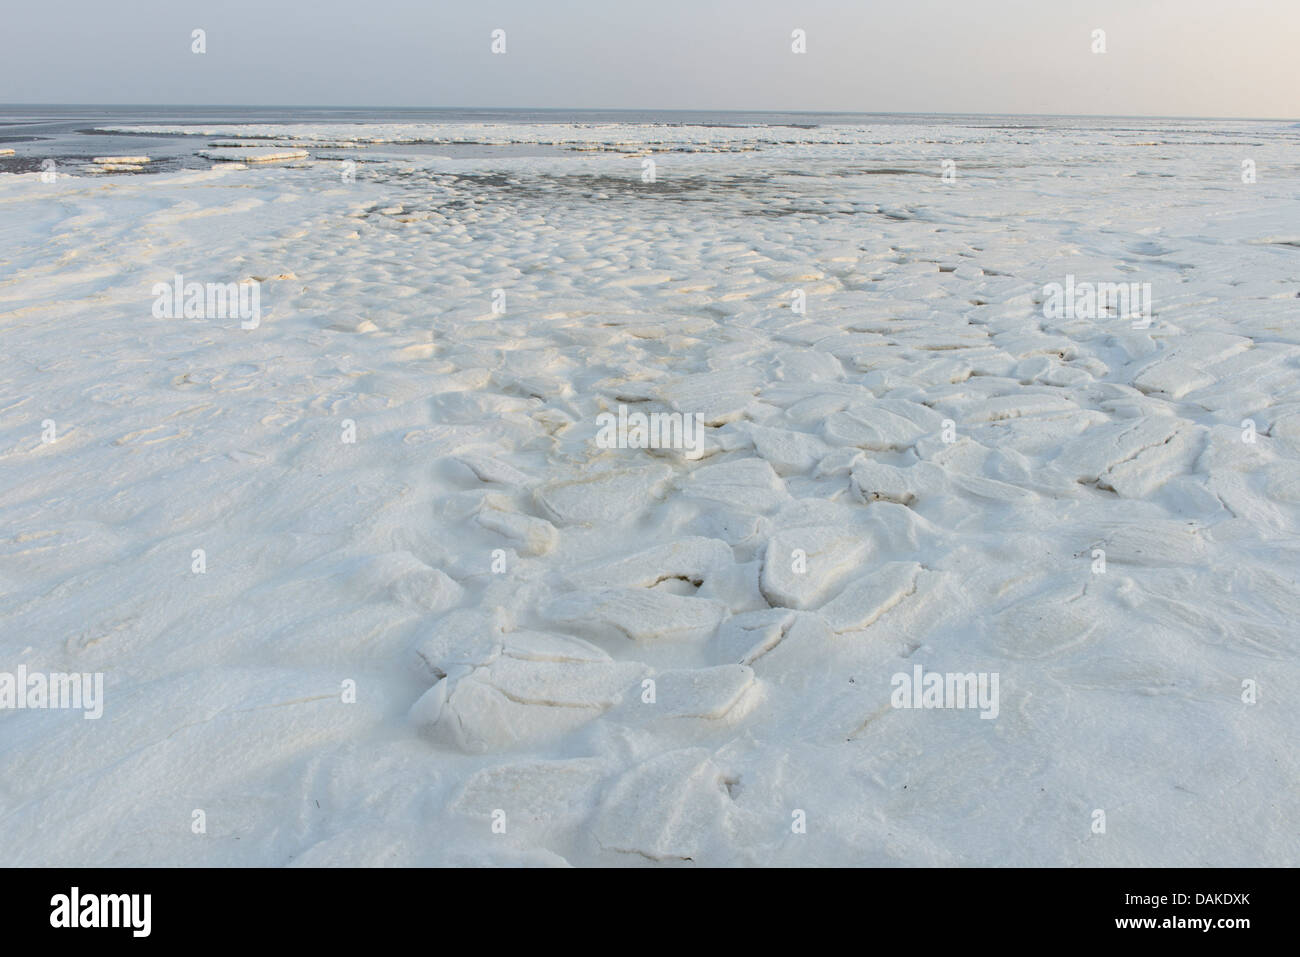 ice formation on the North Sea Coast, Netherlands, Texel - Stock Image